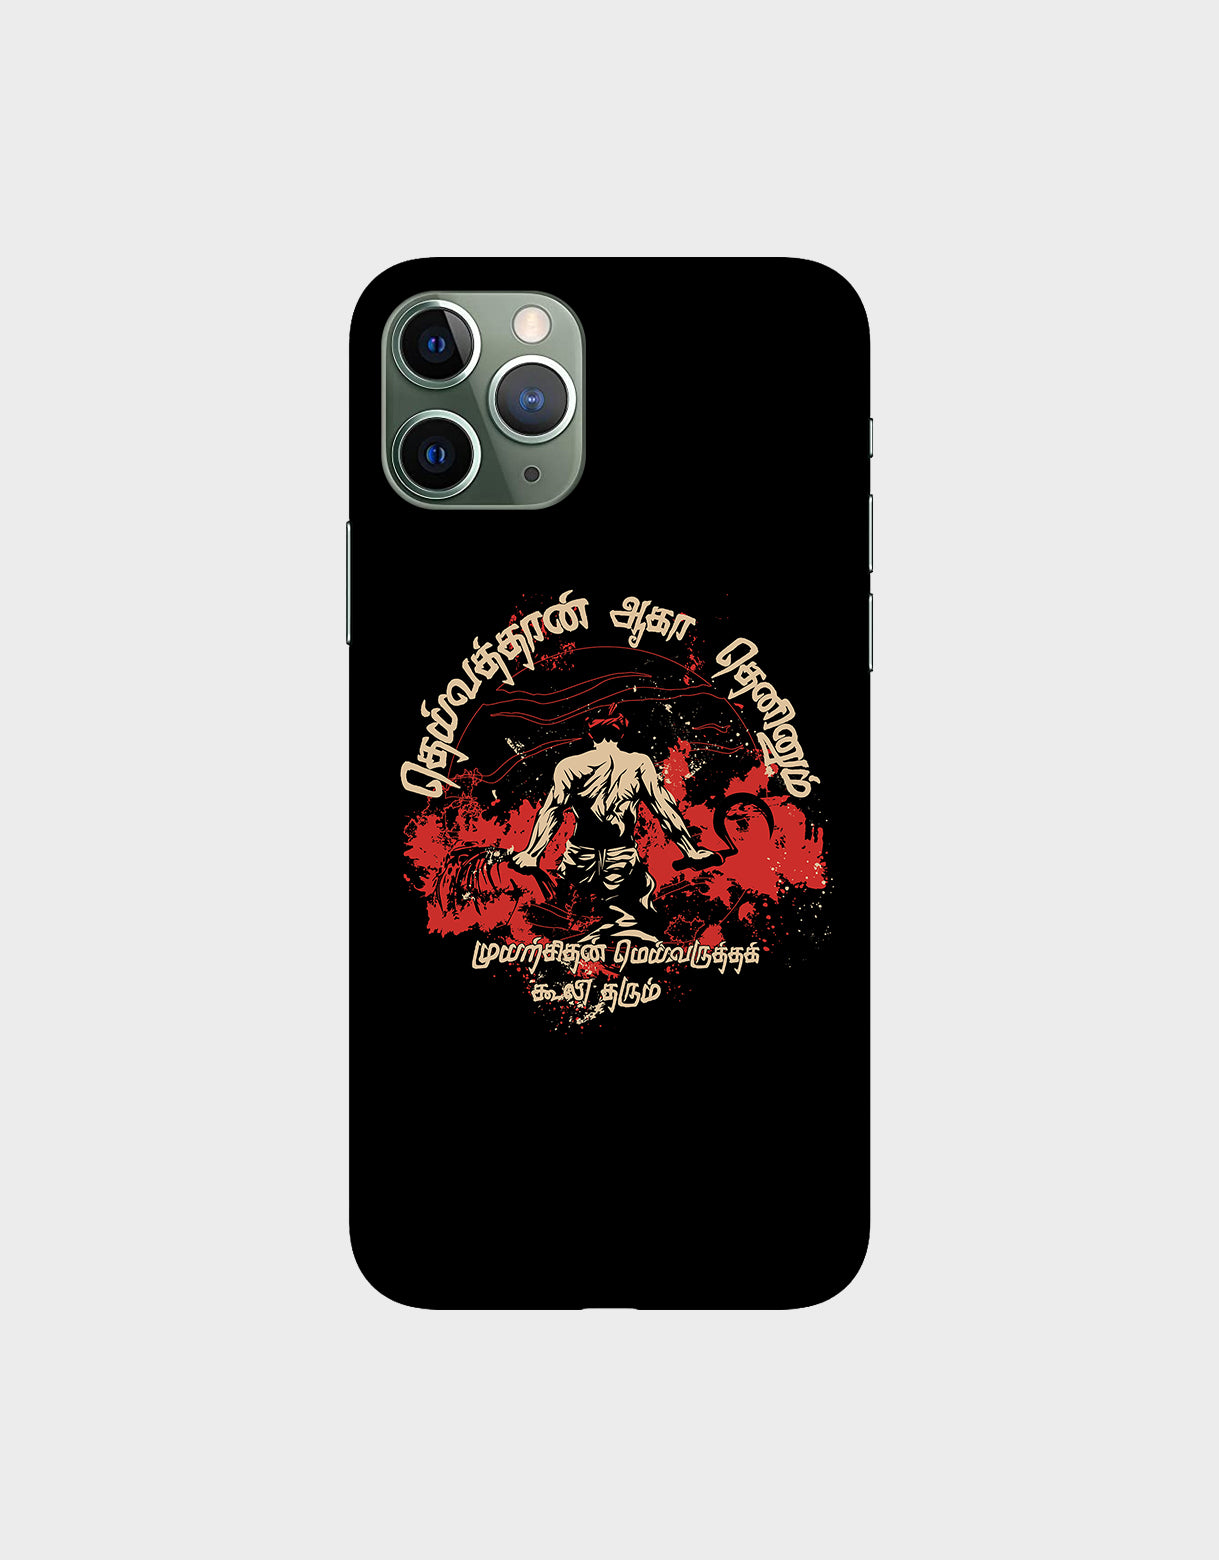 Theivathan -iPhone 11 Pro Mobile covers